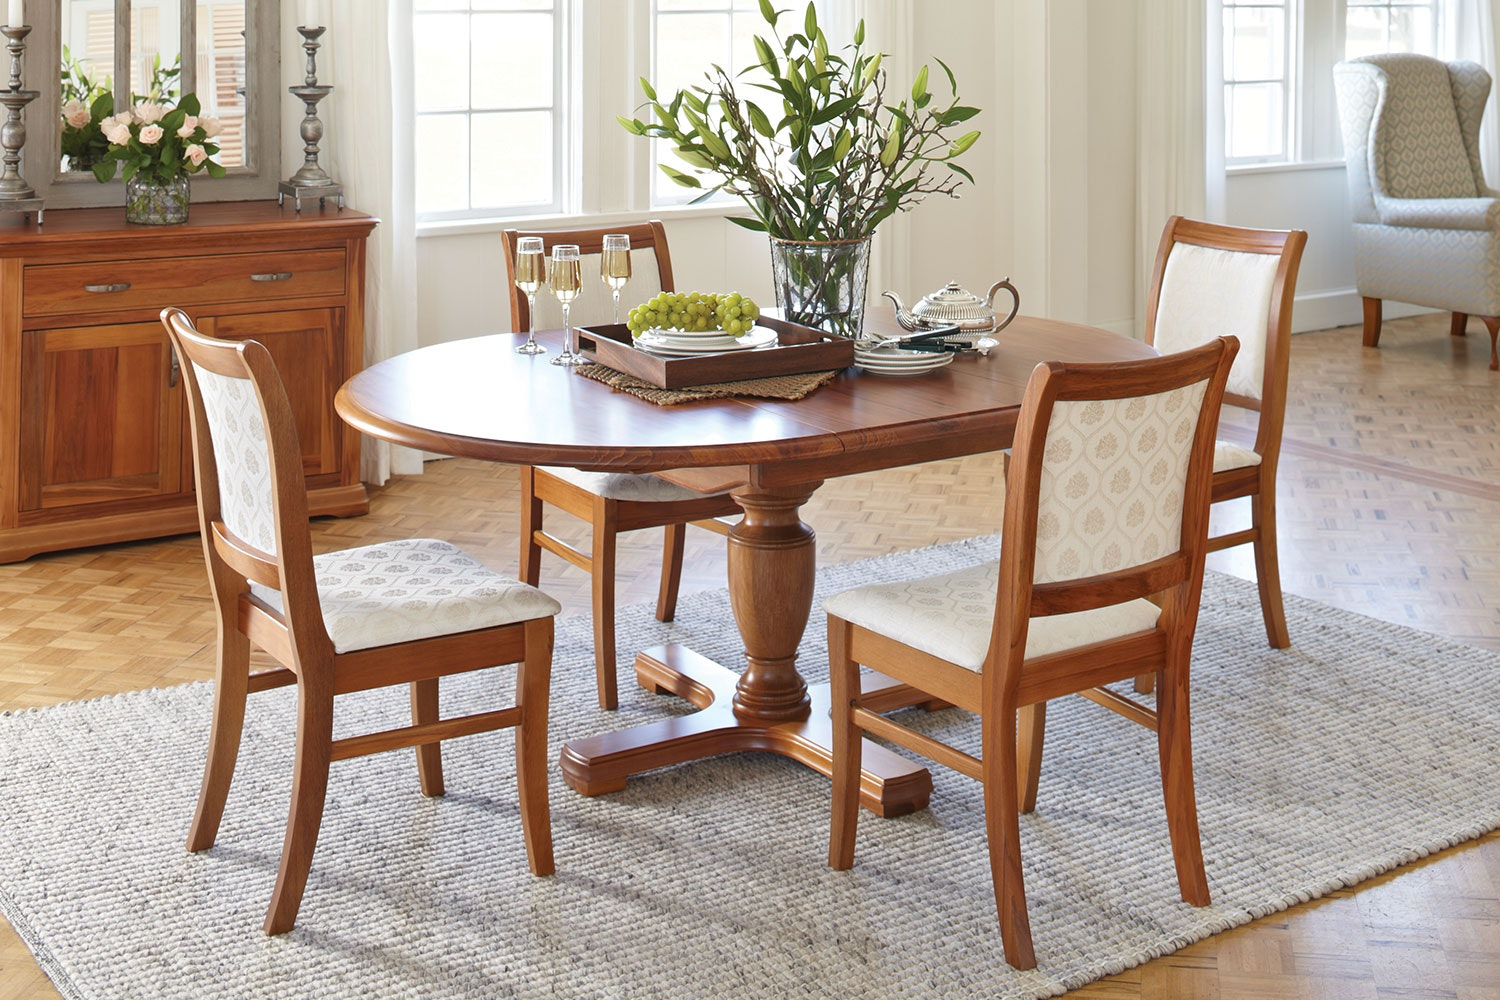 Opera Round Dining Table By Sorensen Furniture